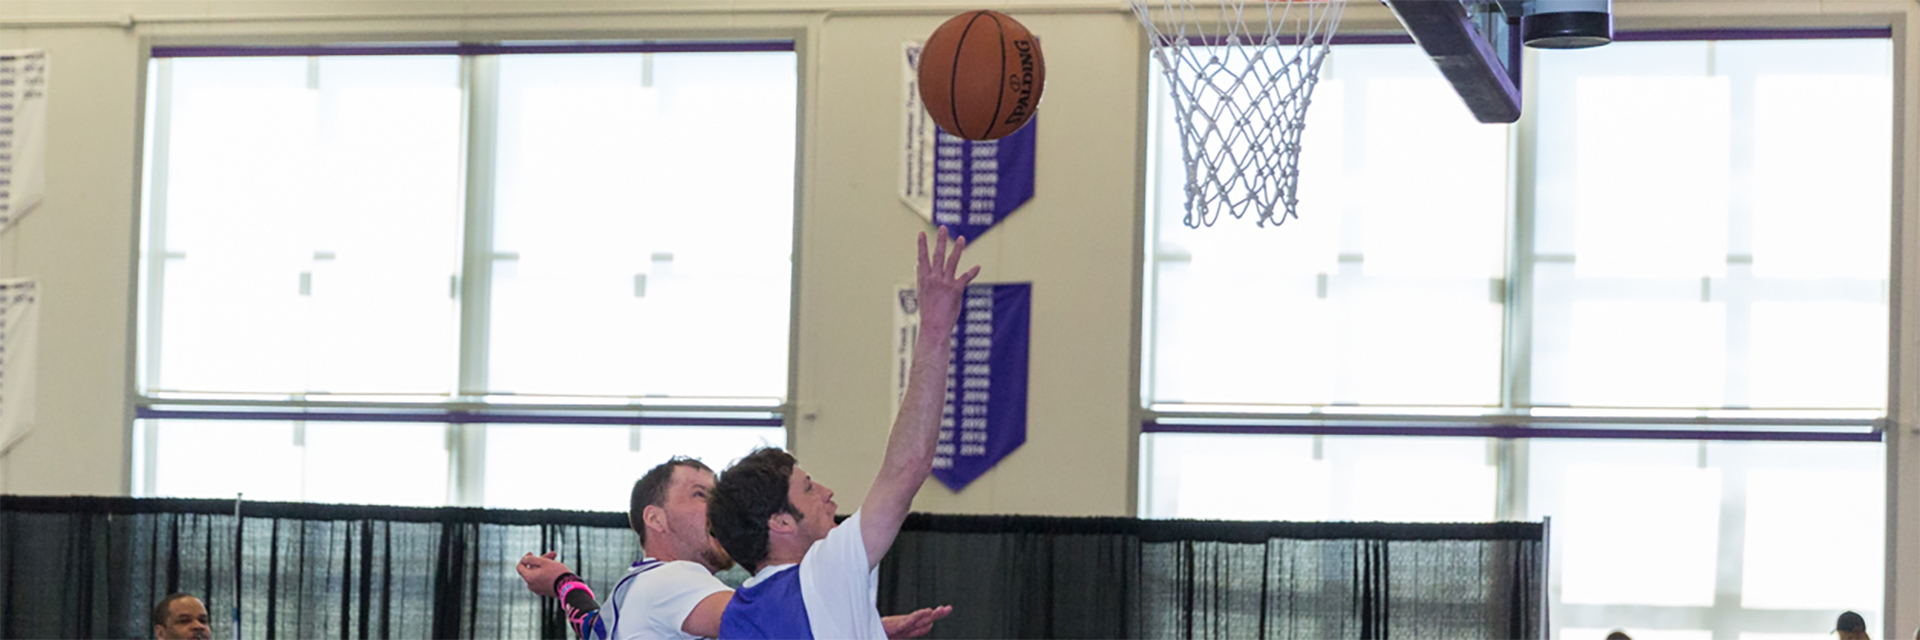 Special Olympics Minnesota basketball athlete shooting ball while another athlete watches from behind